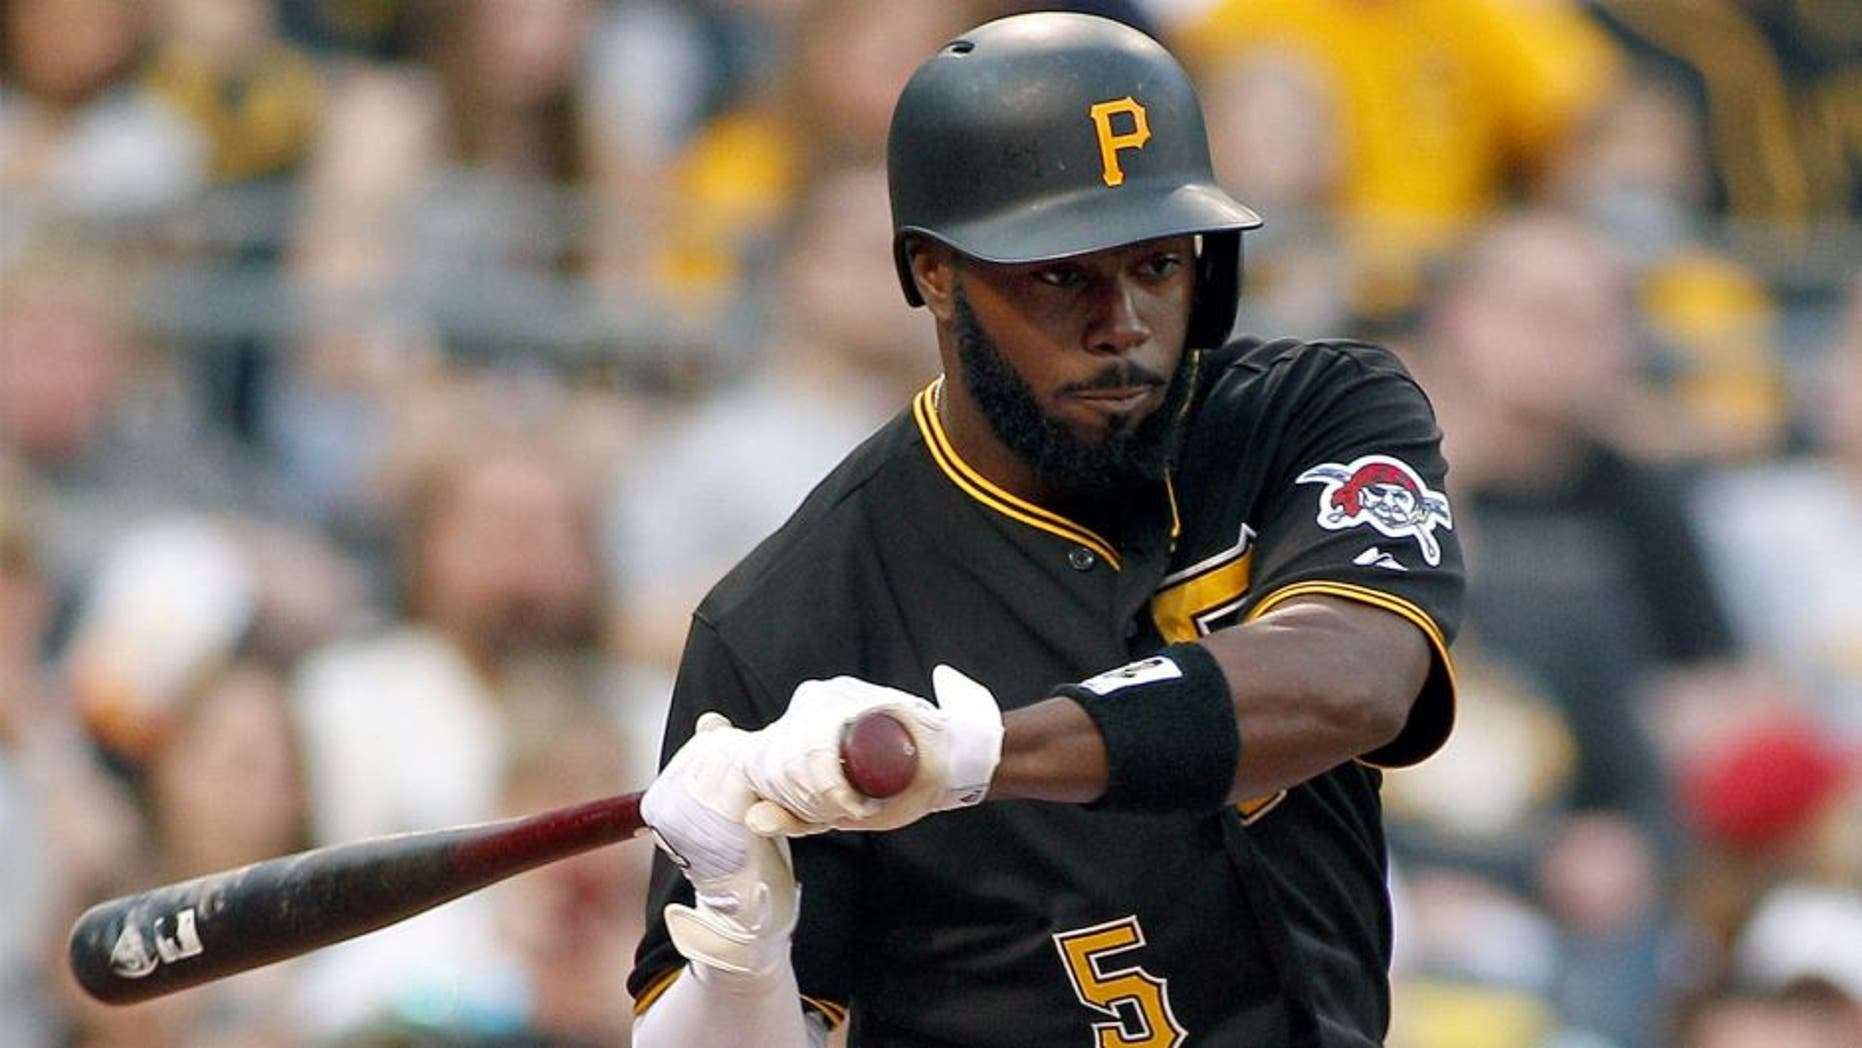 PITTSBURGH, PA - APRIL 18: Josh Harrison #5 of the Pittsburgh Pirates bats during the game against the Milwaukee Brewers at PNC Park on April 18, 2015 in Pittsburgh, Pennsylvania. (Photo by Justin K. Aller/Getty Images)